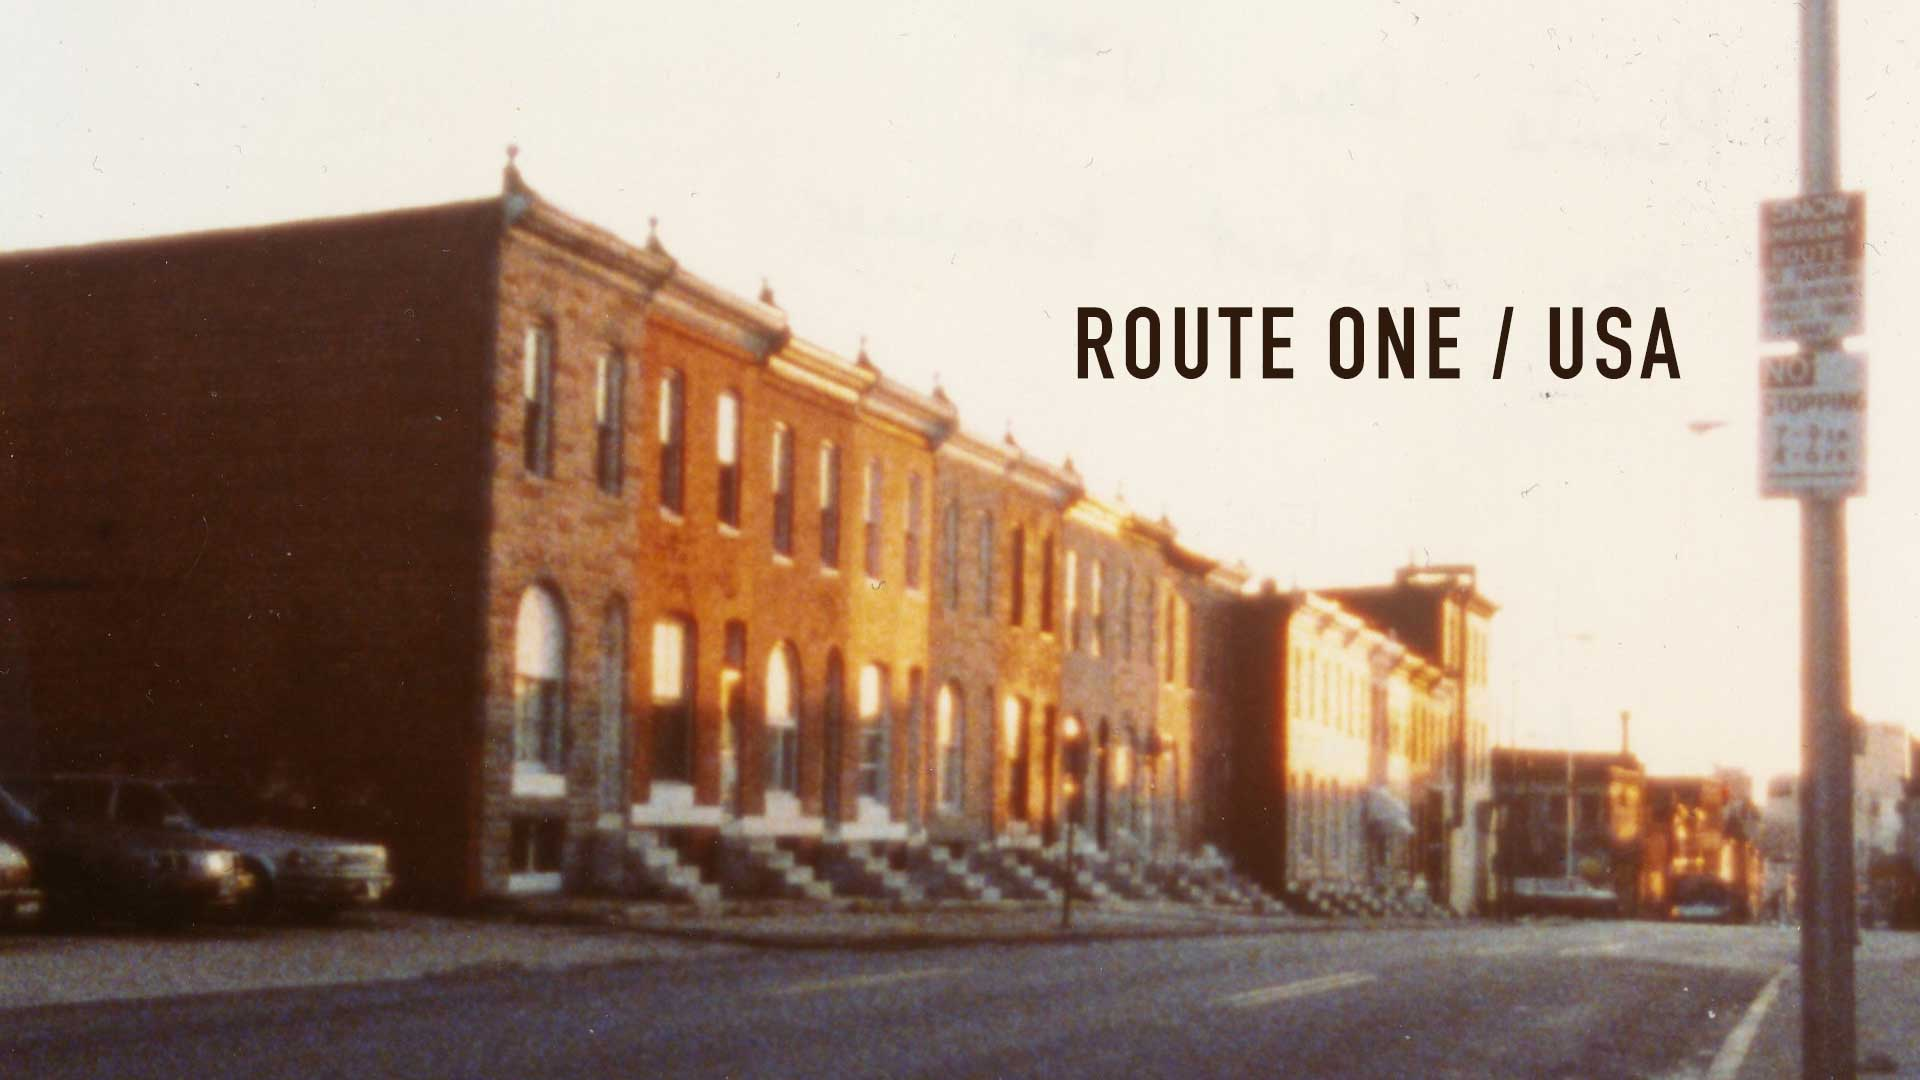 Route One/USA (part 2) - image